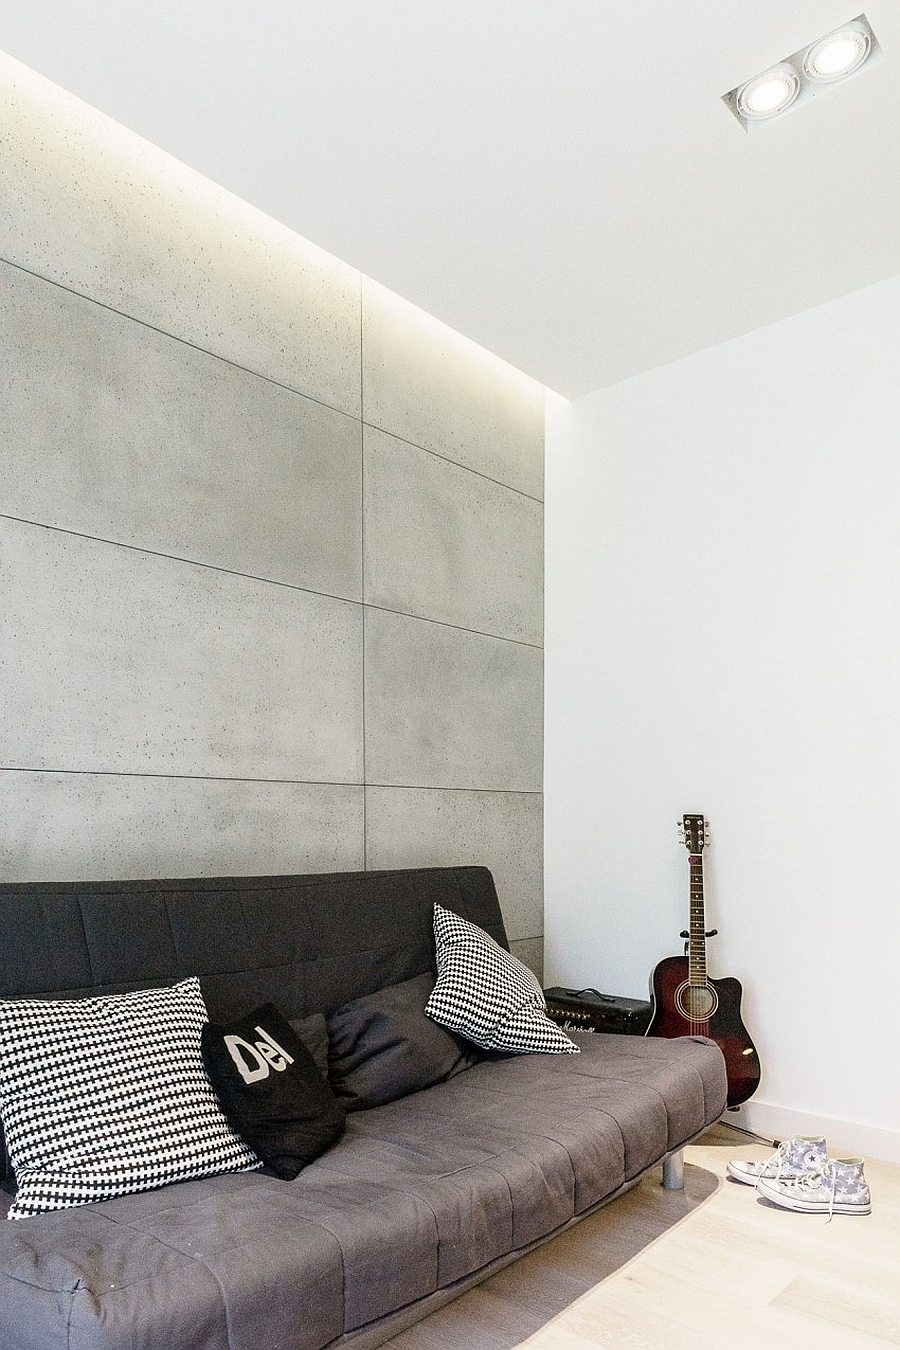 Exposed concrete wall brings contrasting texture indoors